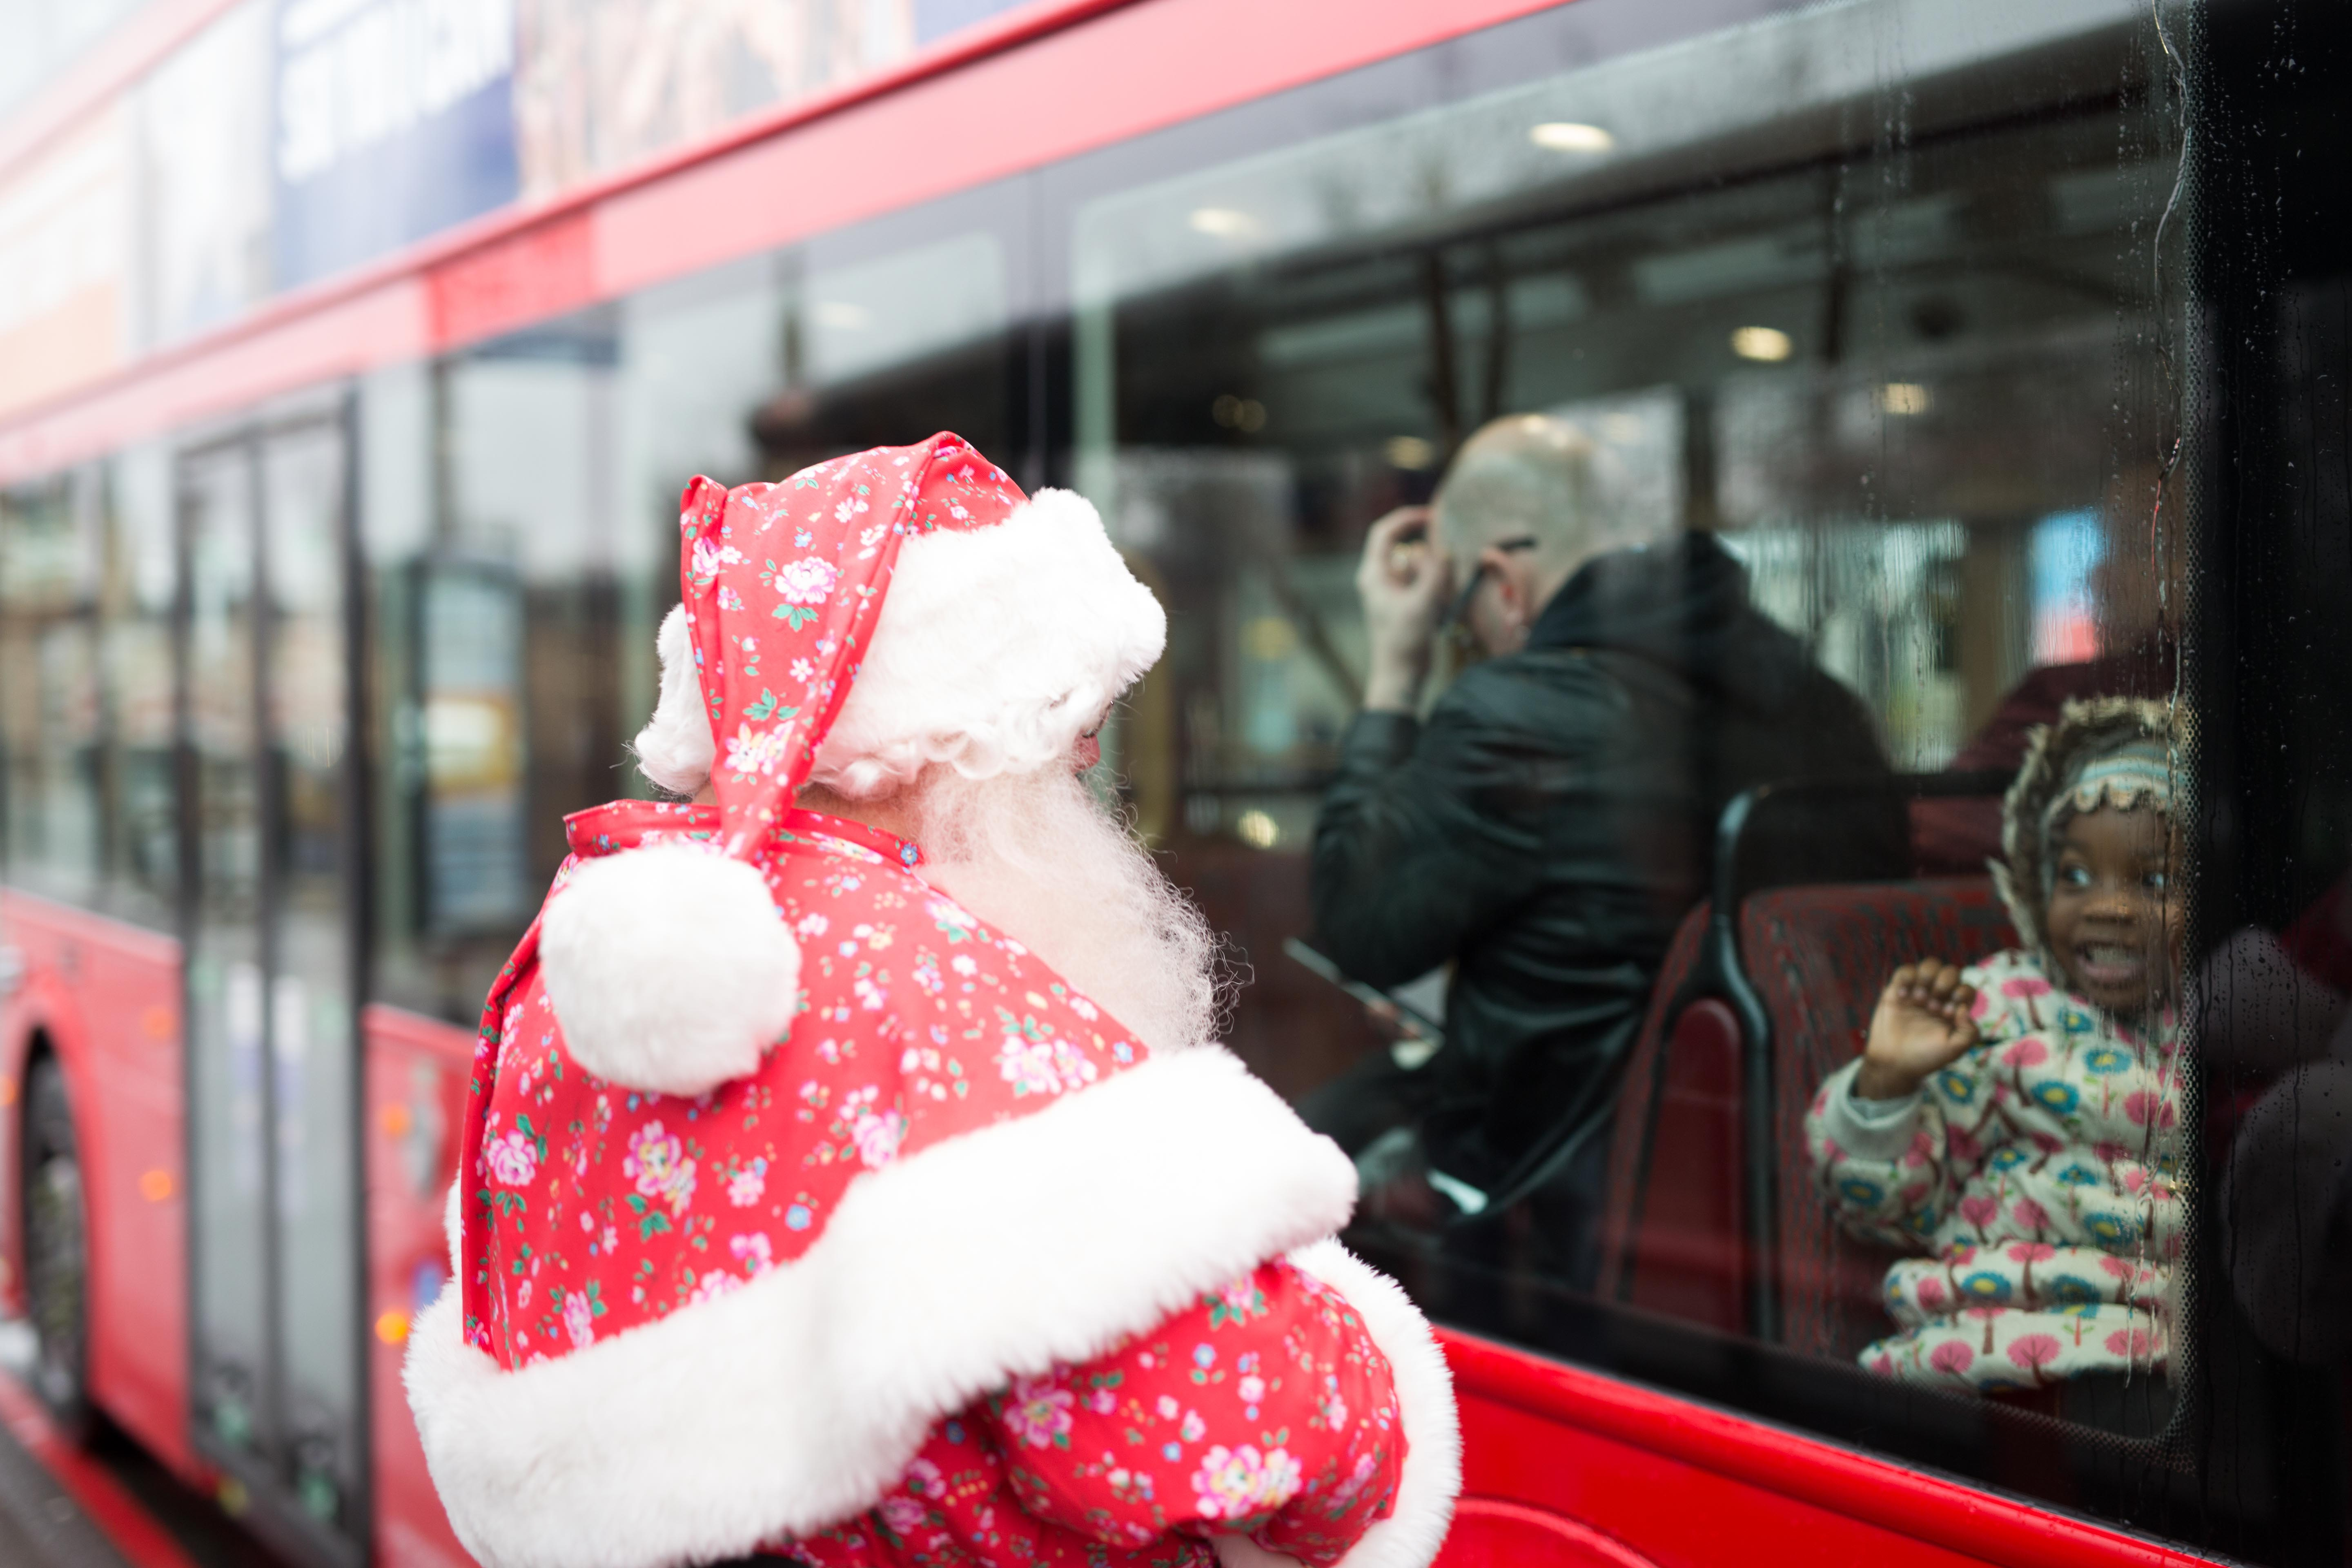 A white-bearded Father Christmas in a traditional bright red Father Christmas outfit with added Cath Kidston Bramley Sprig patterning, waves through the window of a red London bus, to an enchanted child in a flower-patterned anorak who waves back.